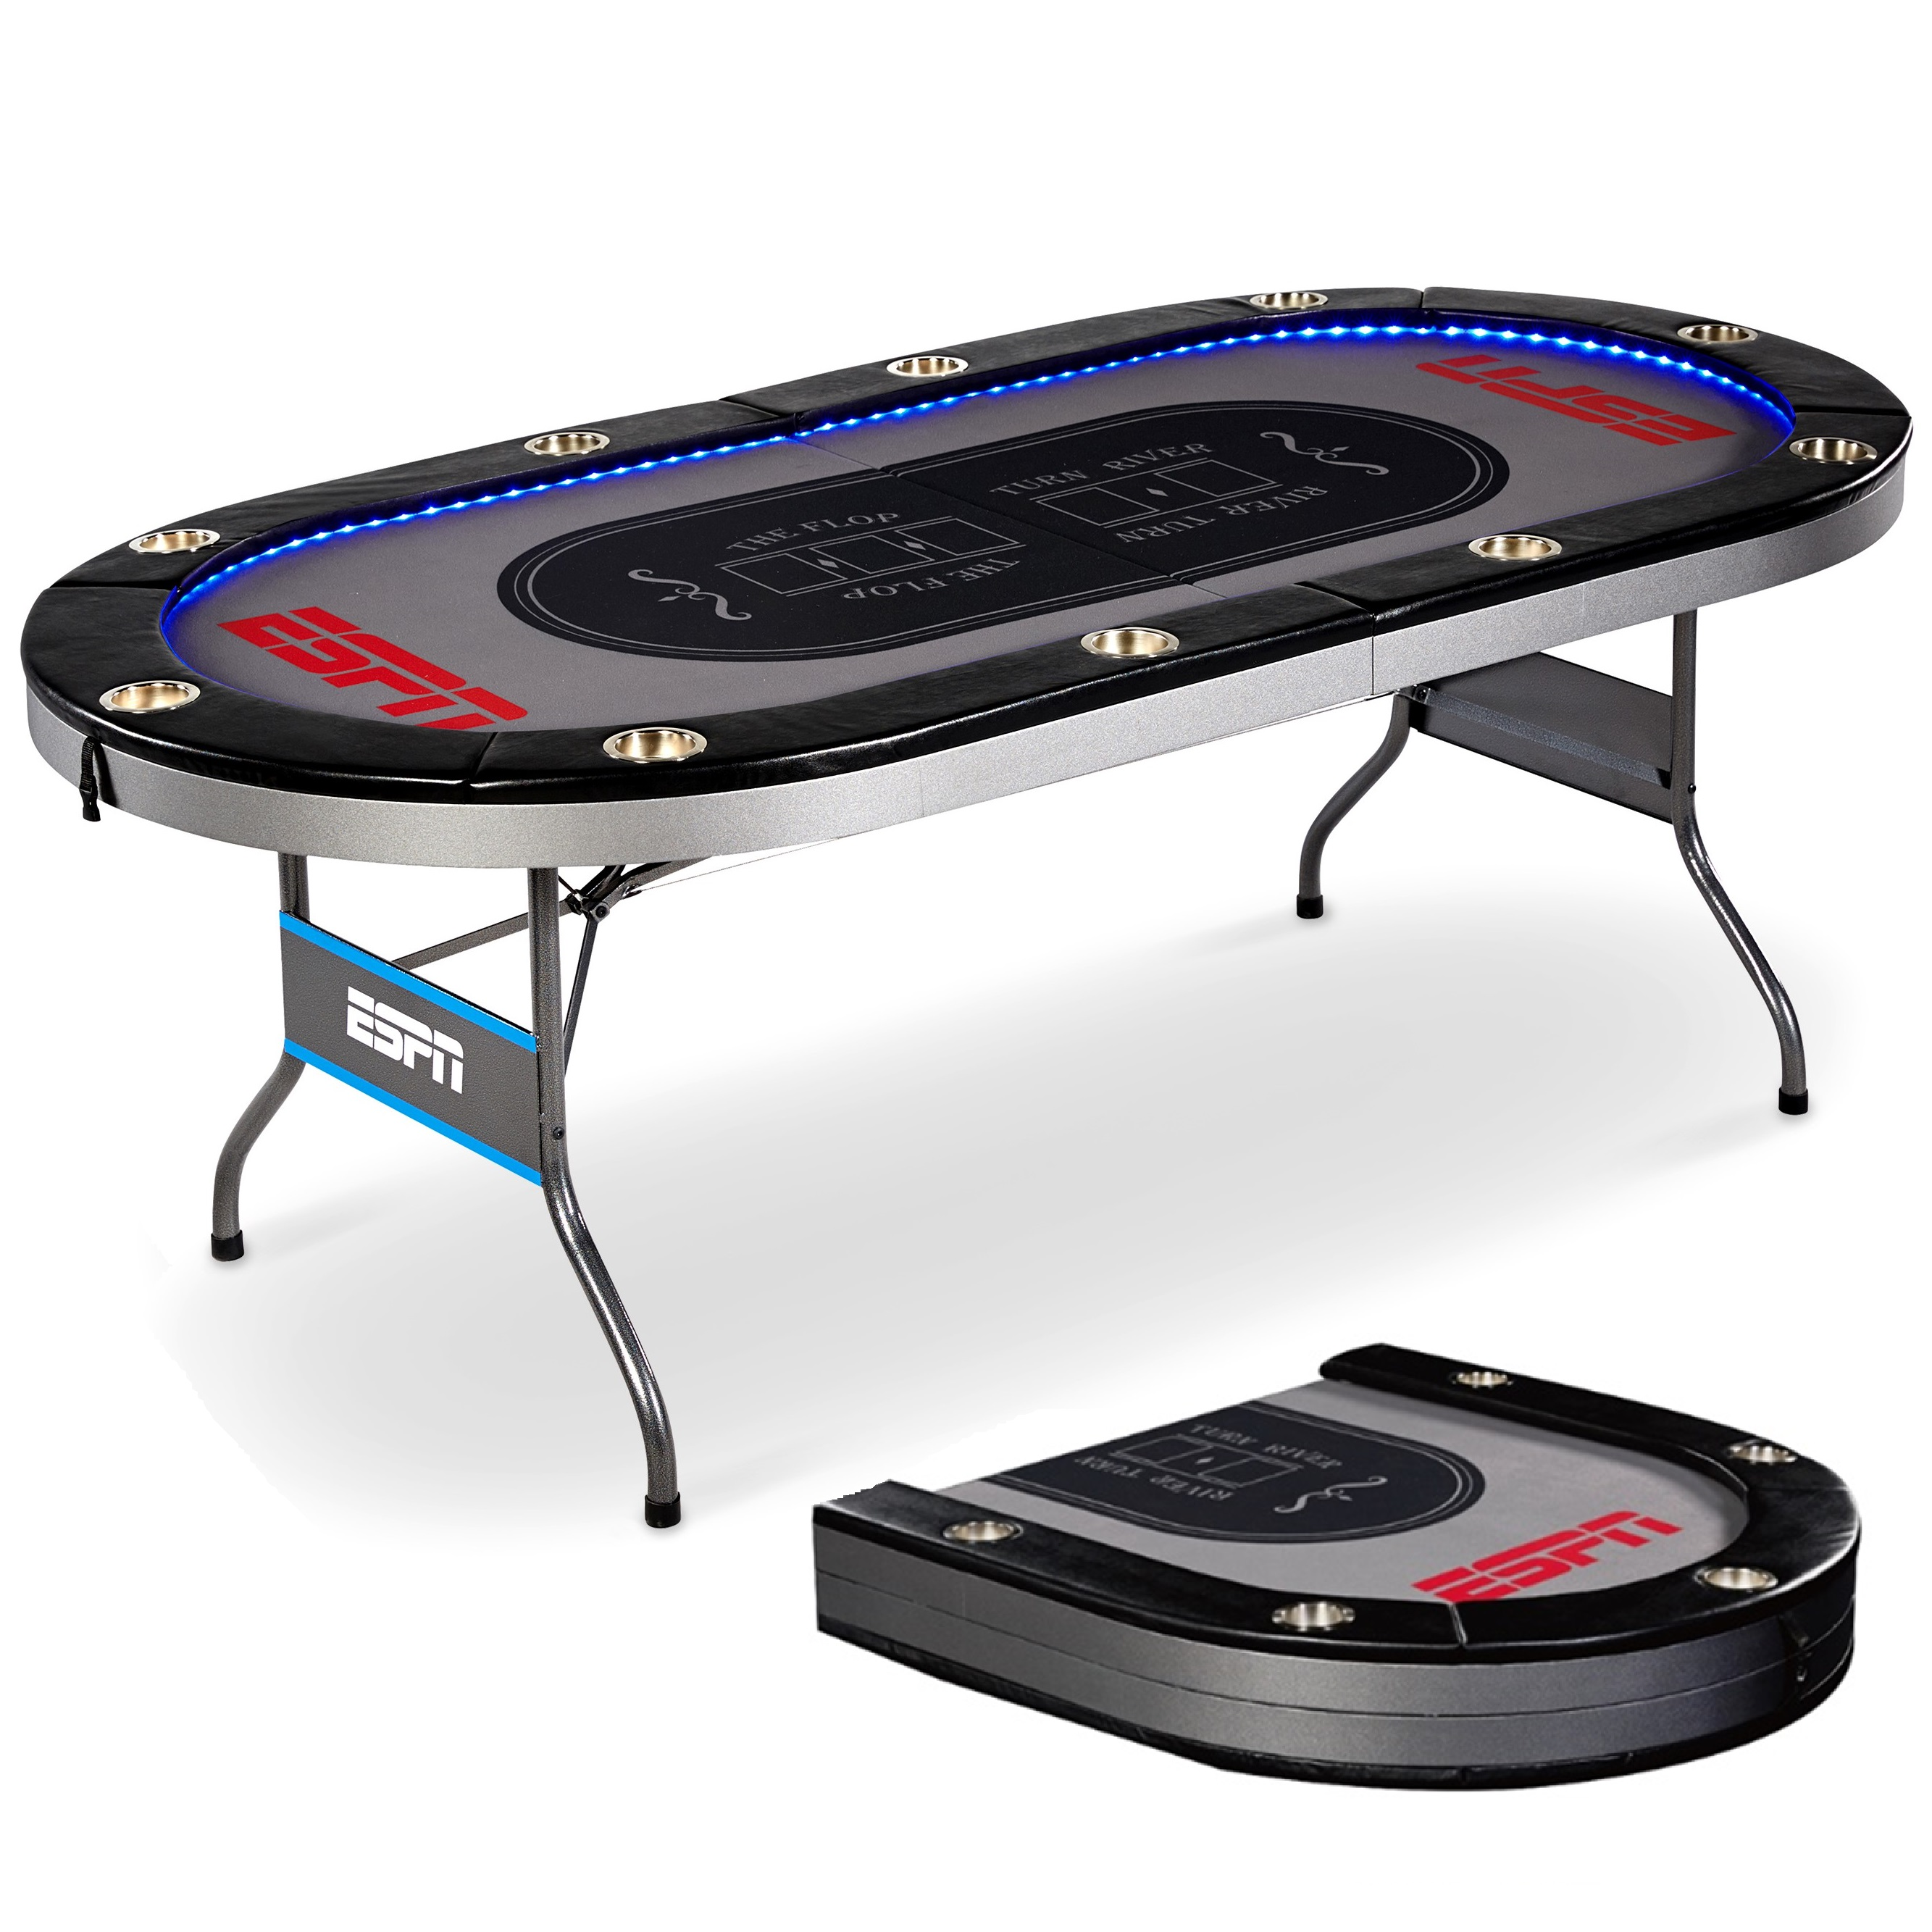 ESPN 10 Player Premium Poker Table With In Laid LED Lights, No Assembly  Required, Foldable, Gray